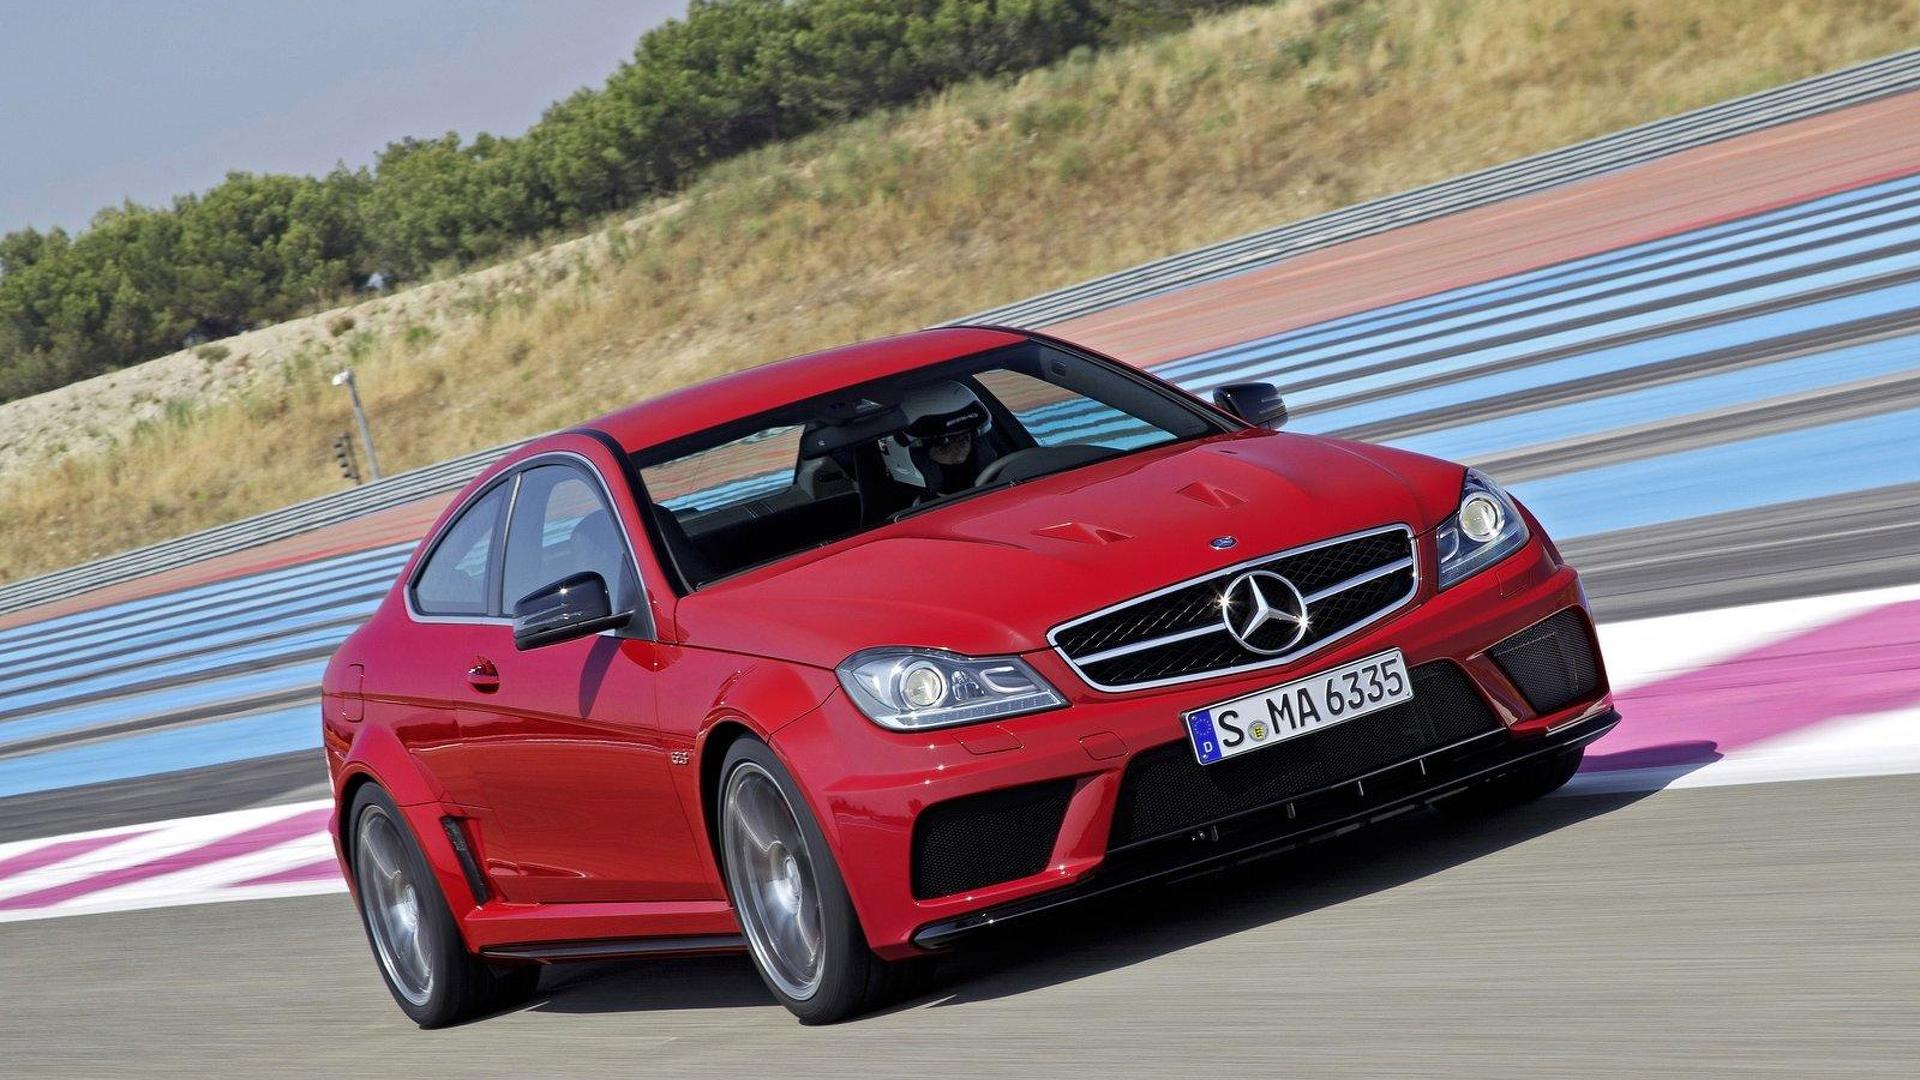 Mercedes delivers its 10 millionth C-Class, looks forward to next-generation model